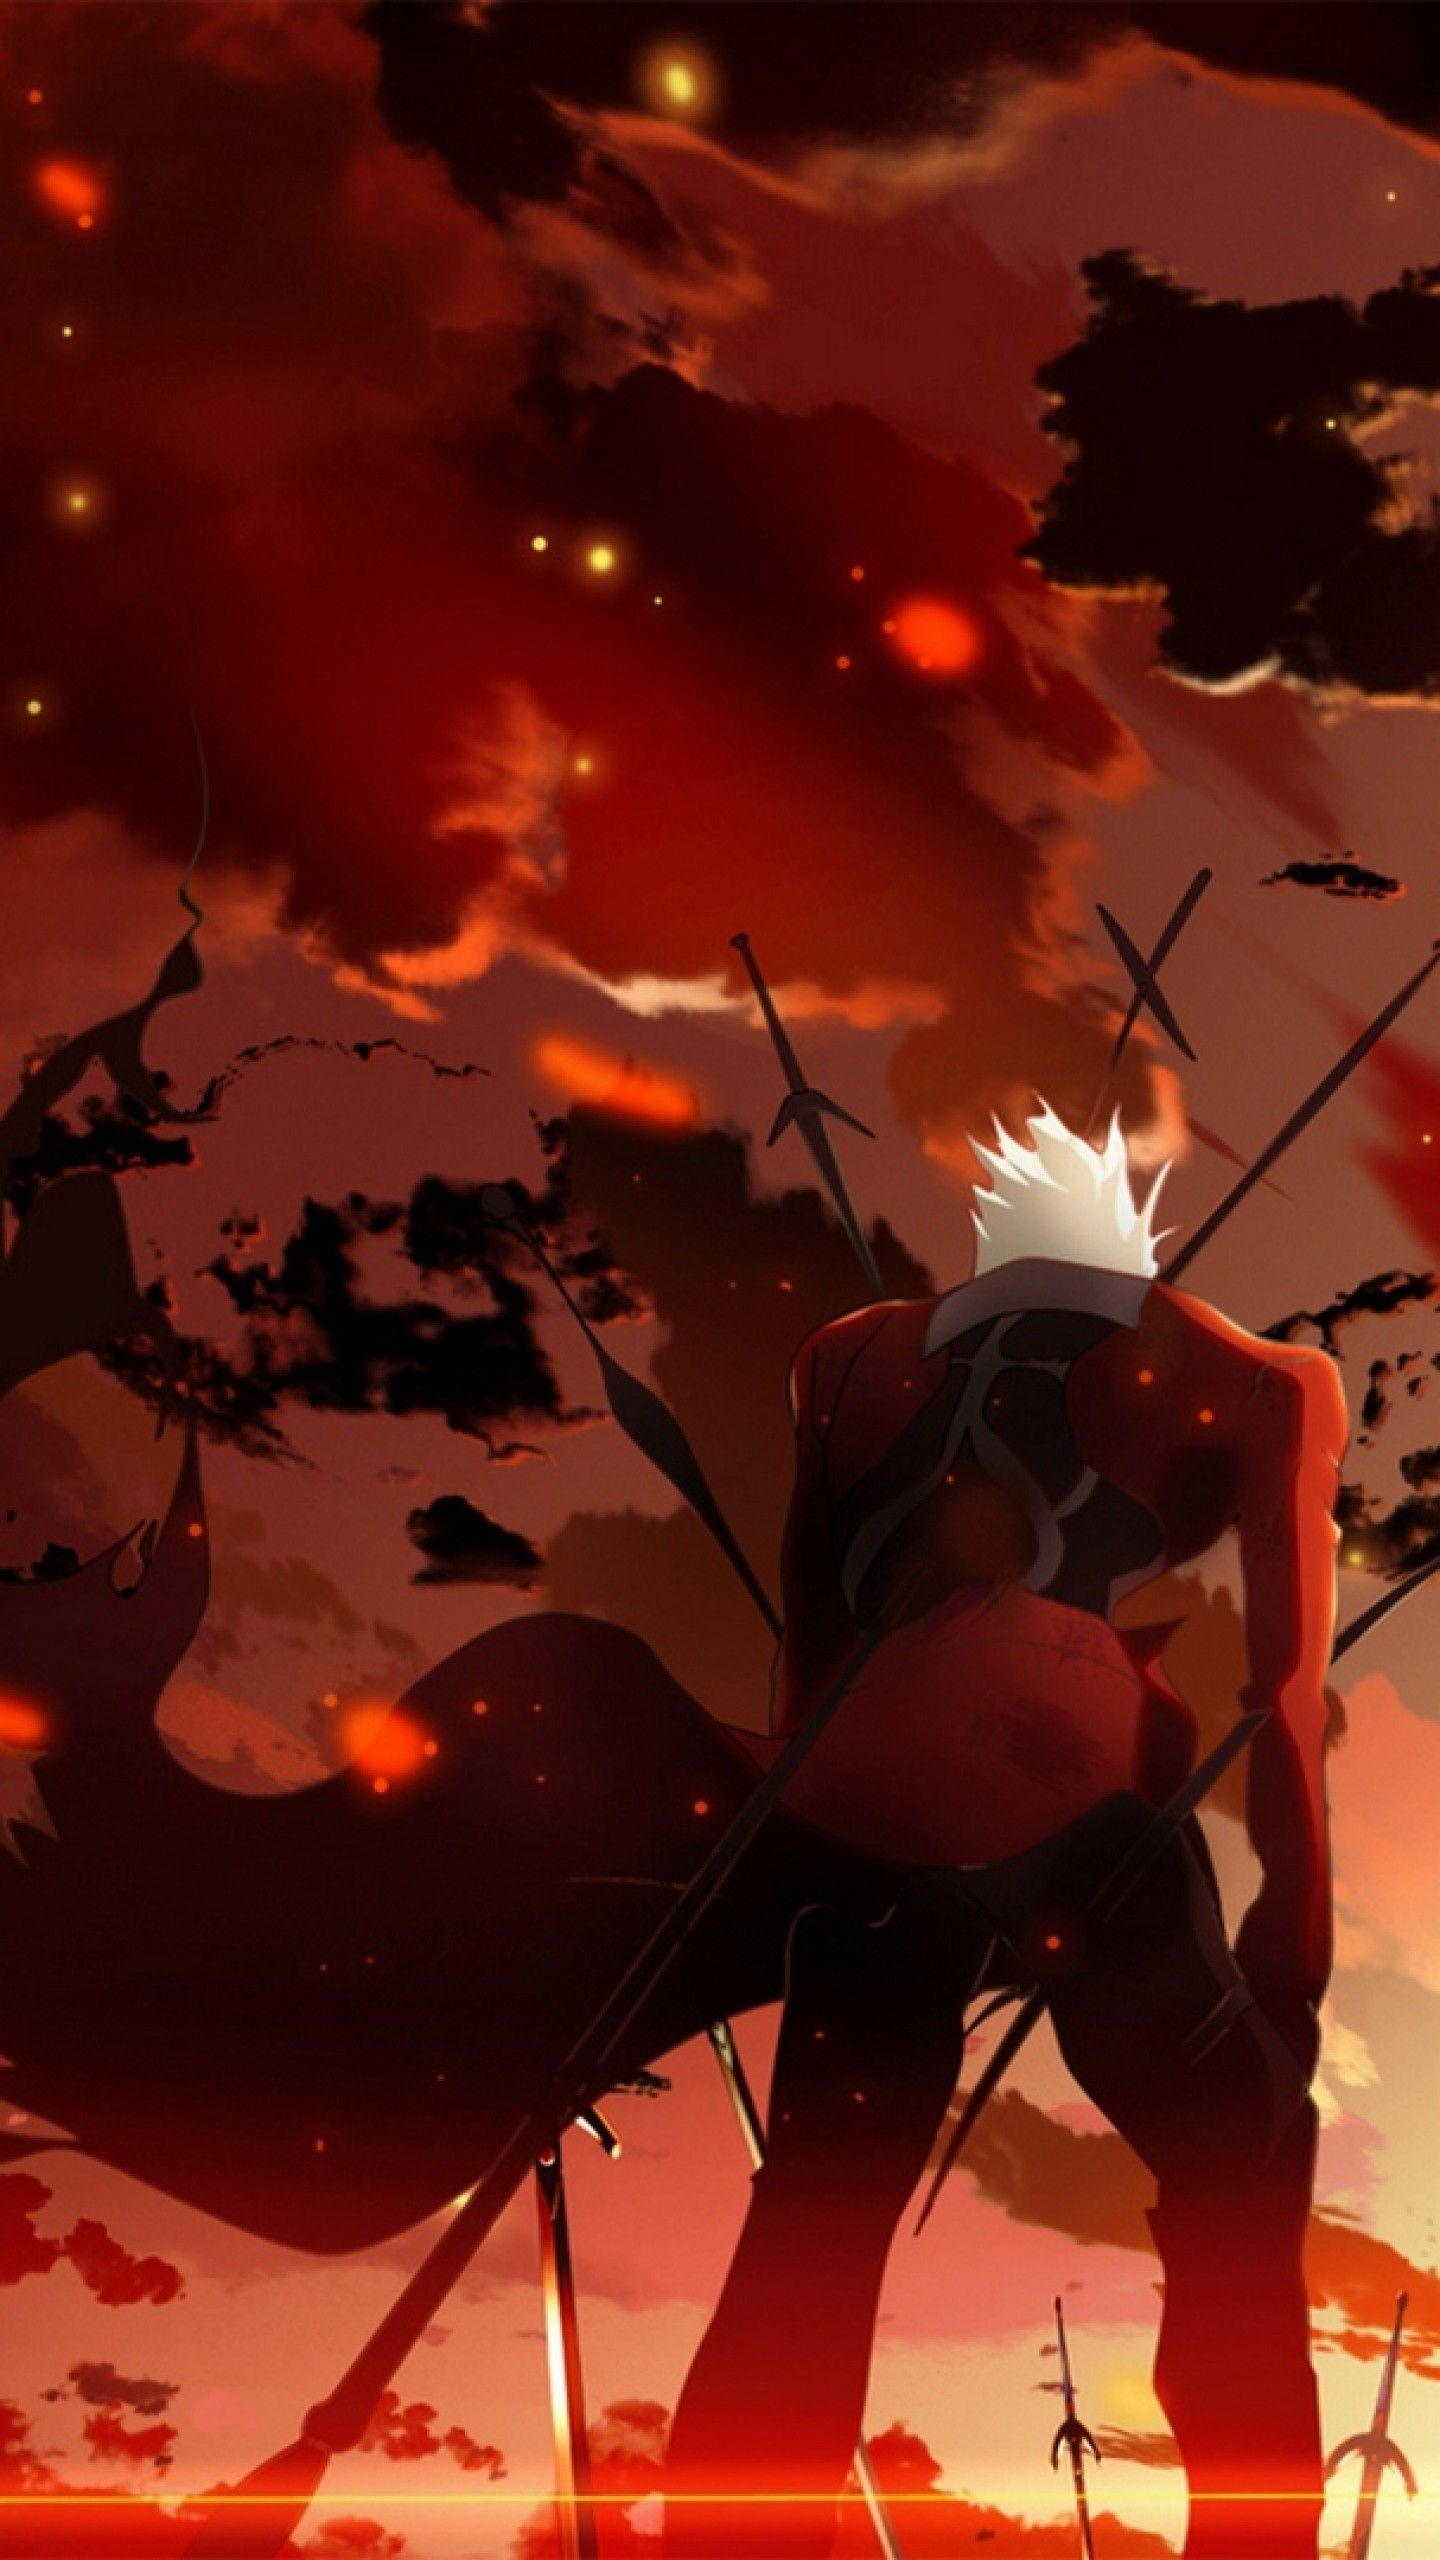 Fate Zero Iphone Wallpapers Top Free Fate Zero Iphone